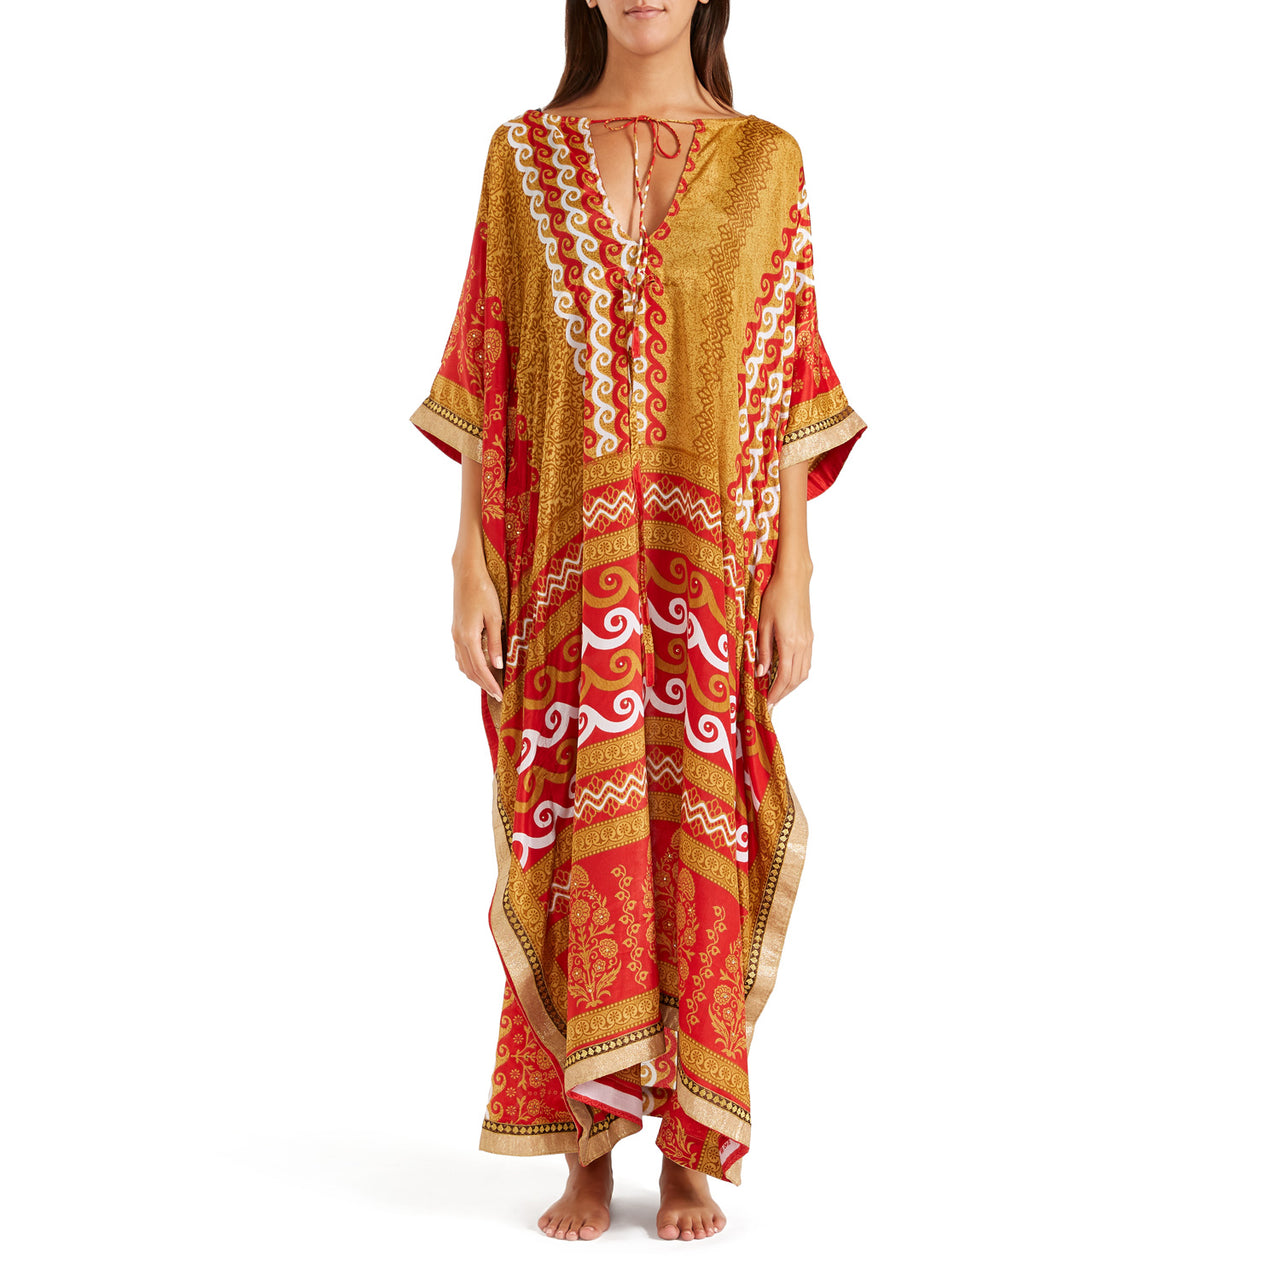 The Shannon Silk Kaftan 7